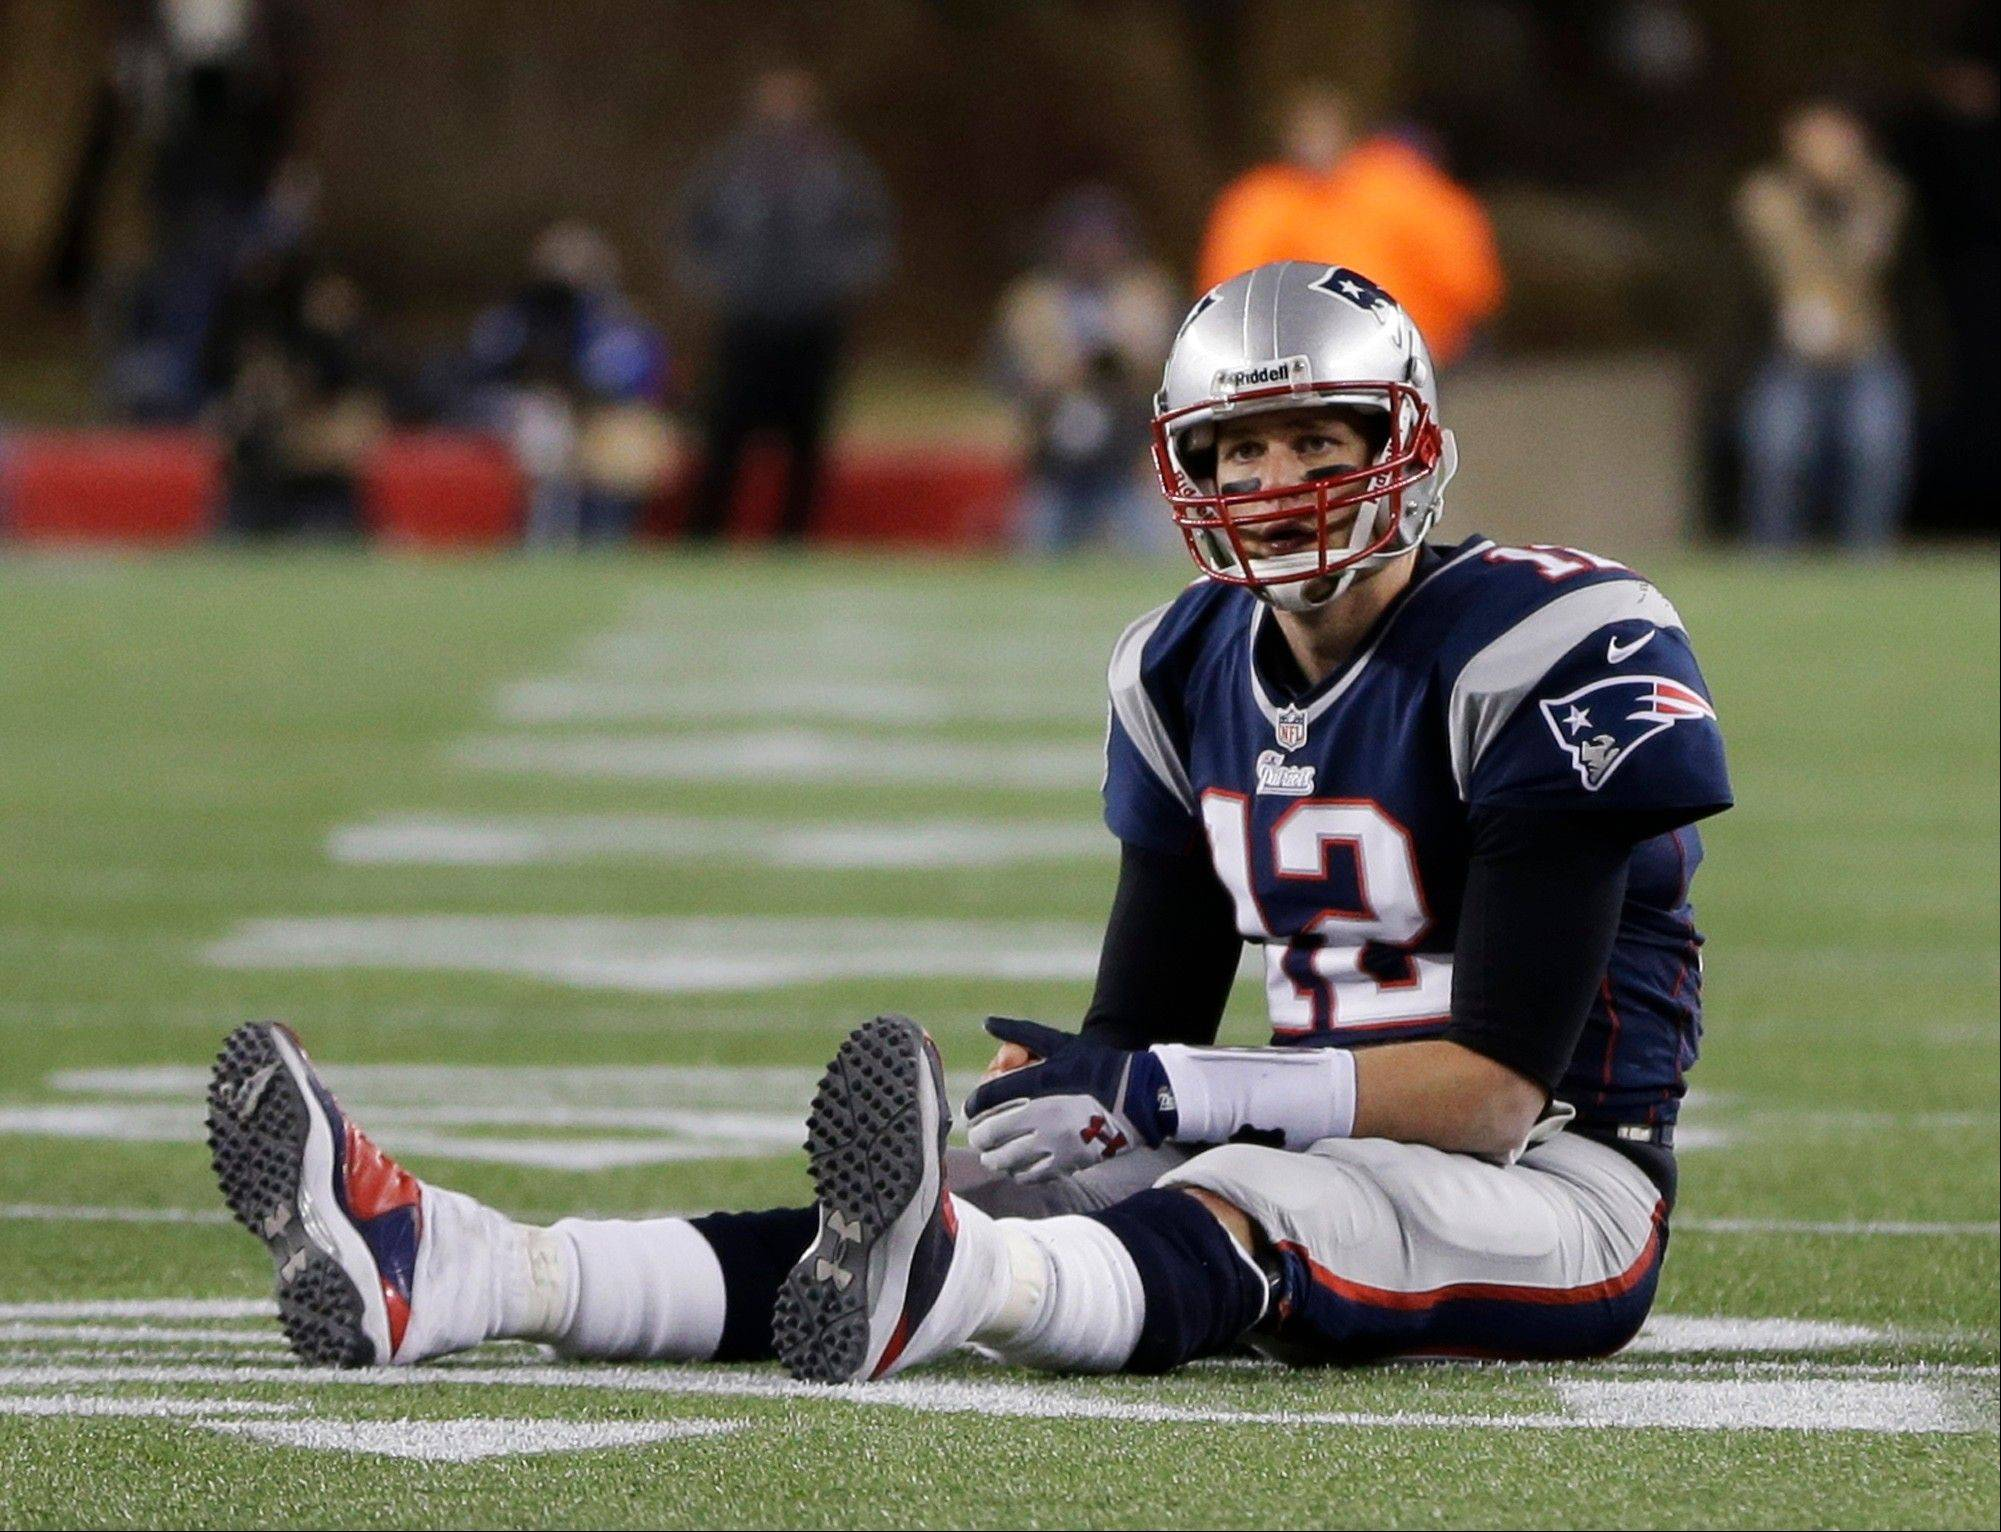 New England Patriots quarterback Tom Brady sits on the field after getting hit during the second half of the NFL football AFC Championship football game against the Baltimore Ravens in Foxborough, Mass., Sunday, Jan. 20, 2013.